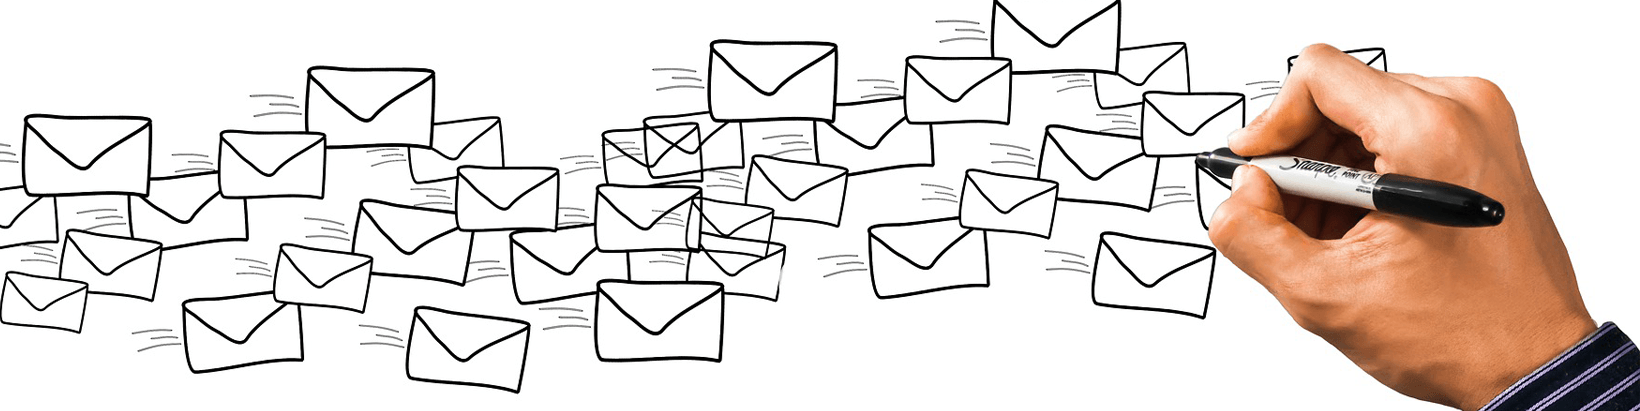 Drawing of many envelopes being drawn by a hand